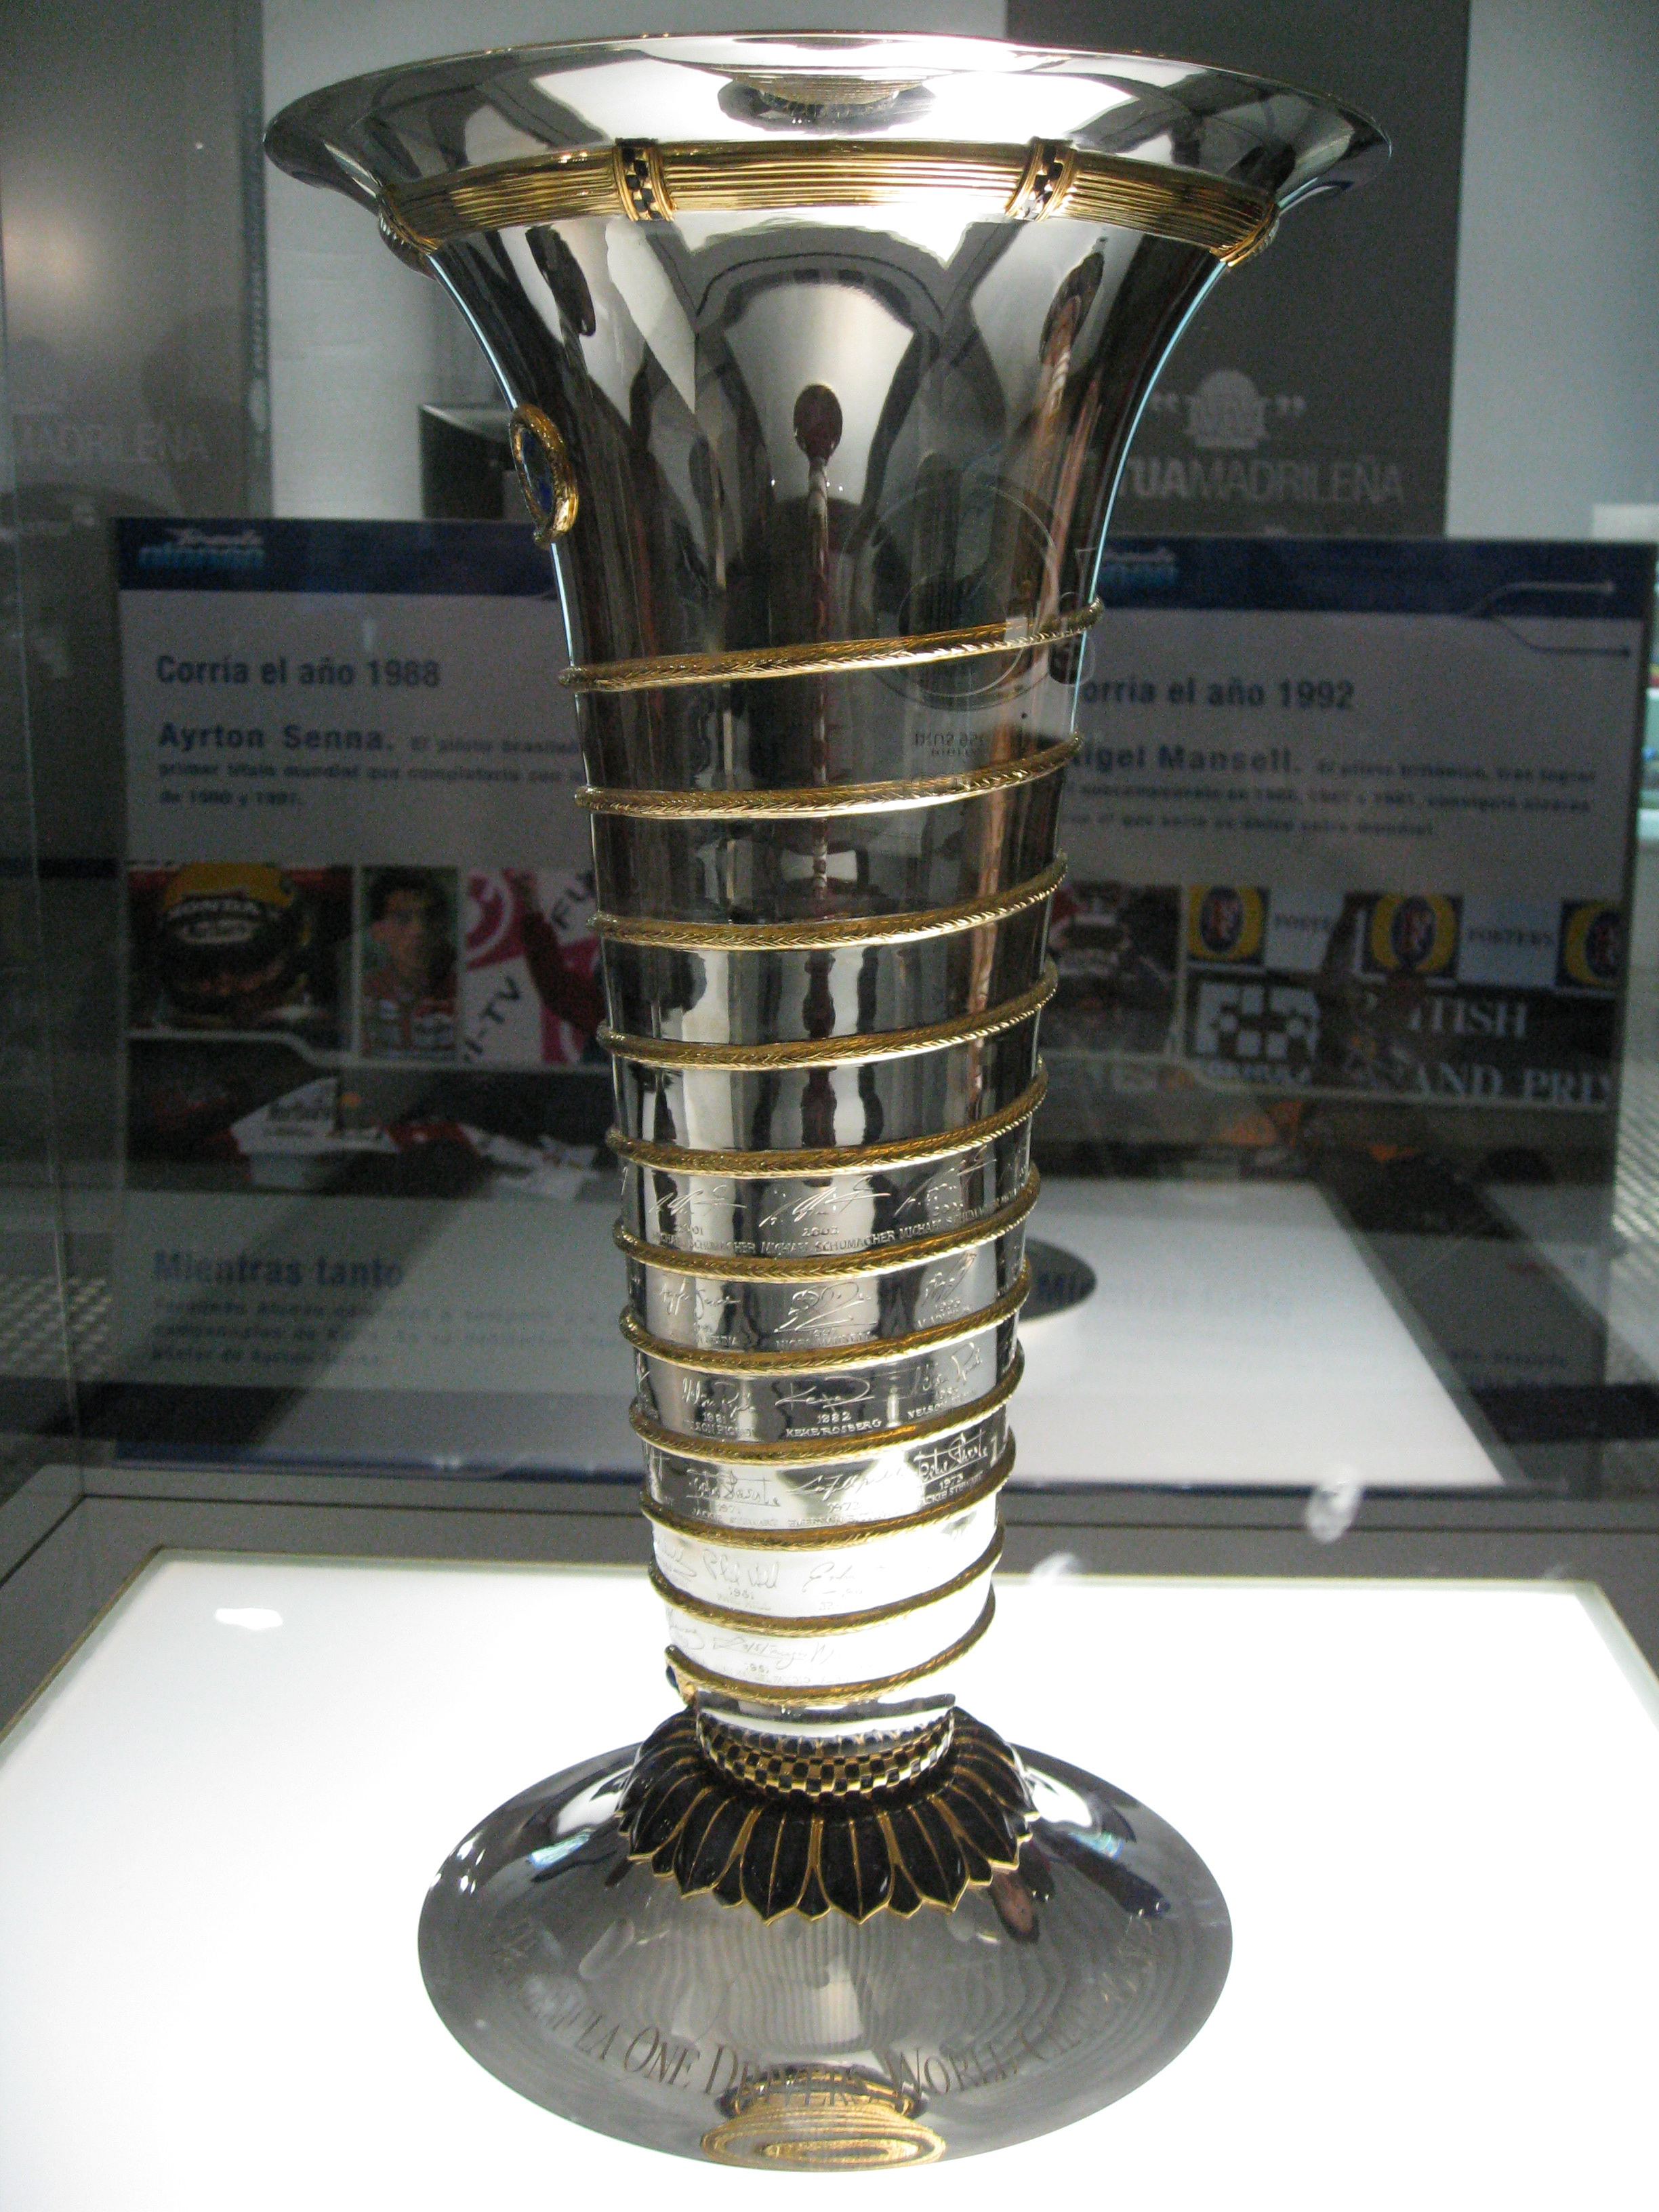 JГјngster Formel 1 Weltmeister